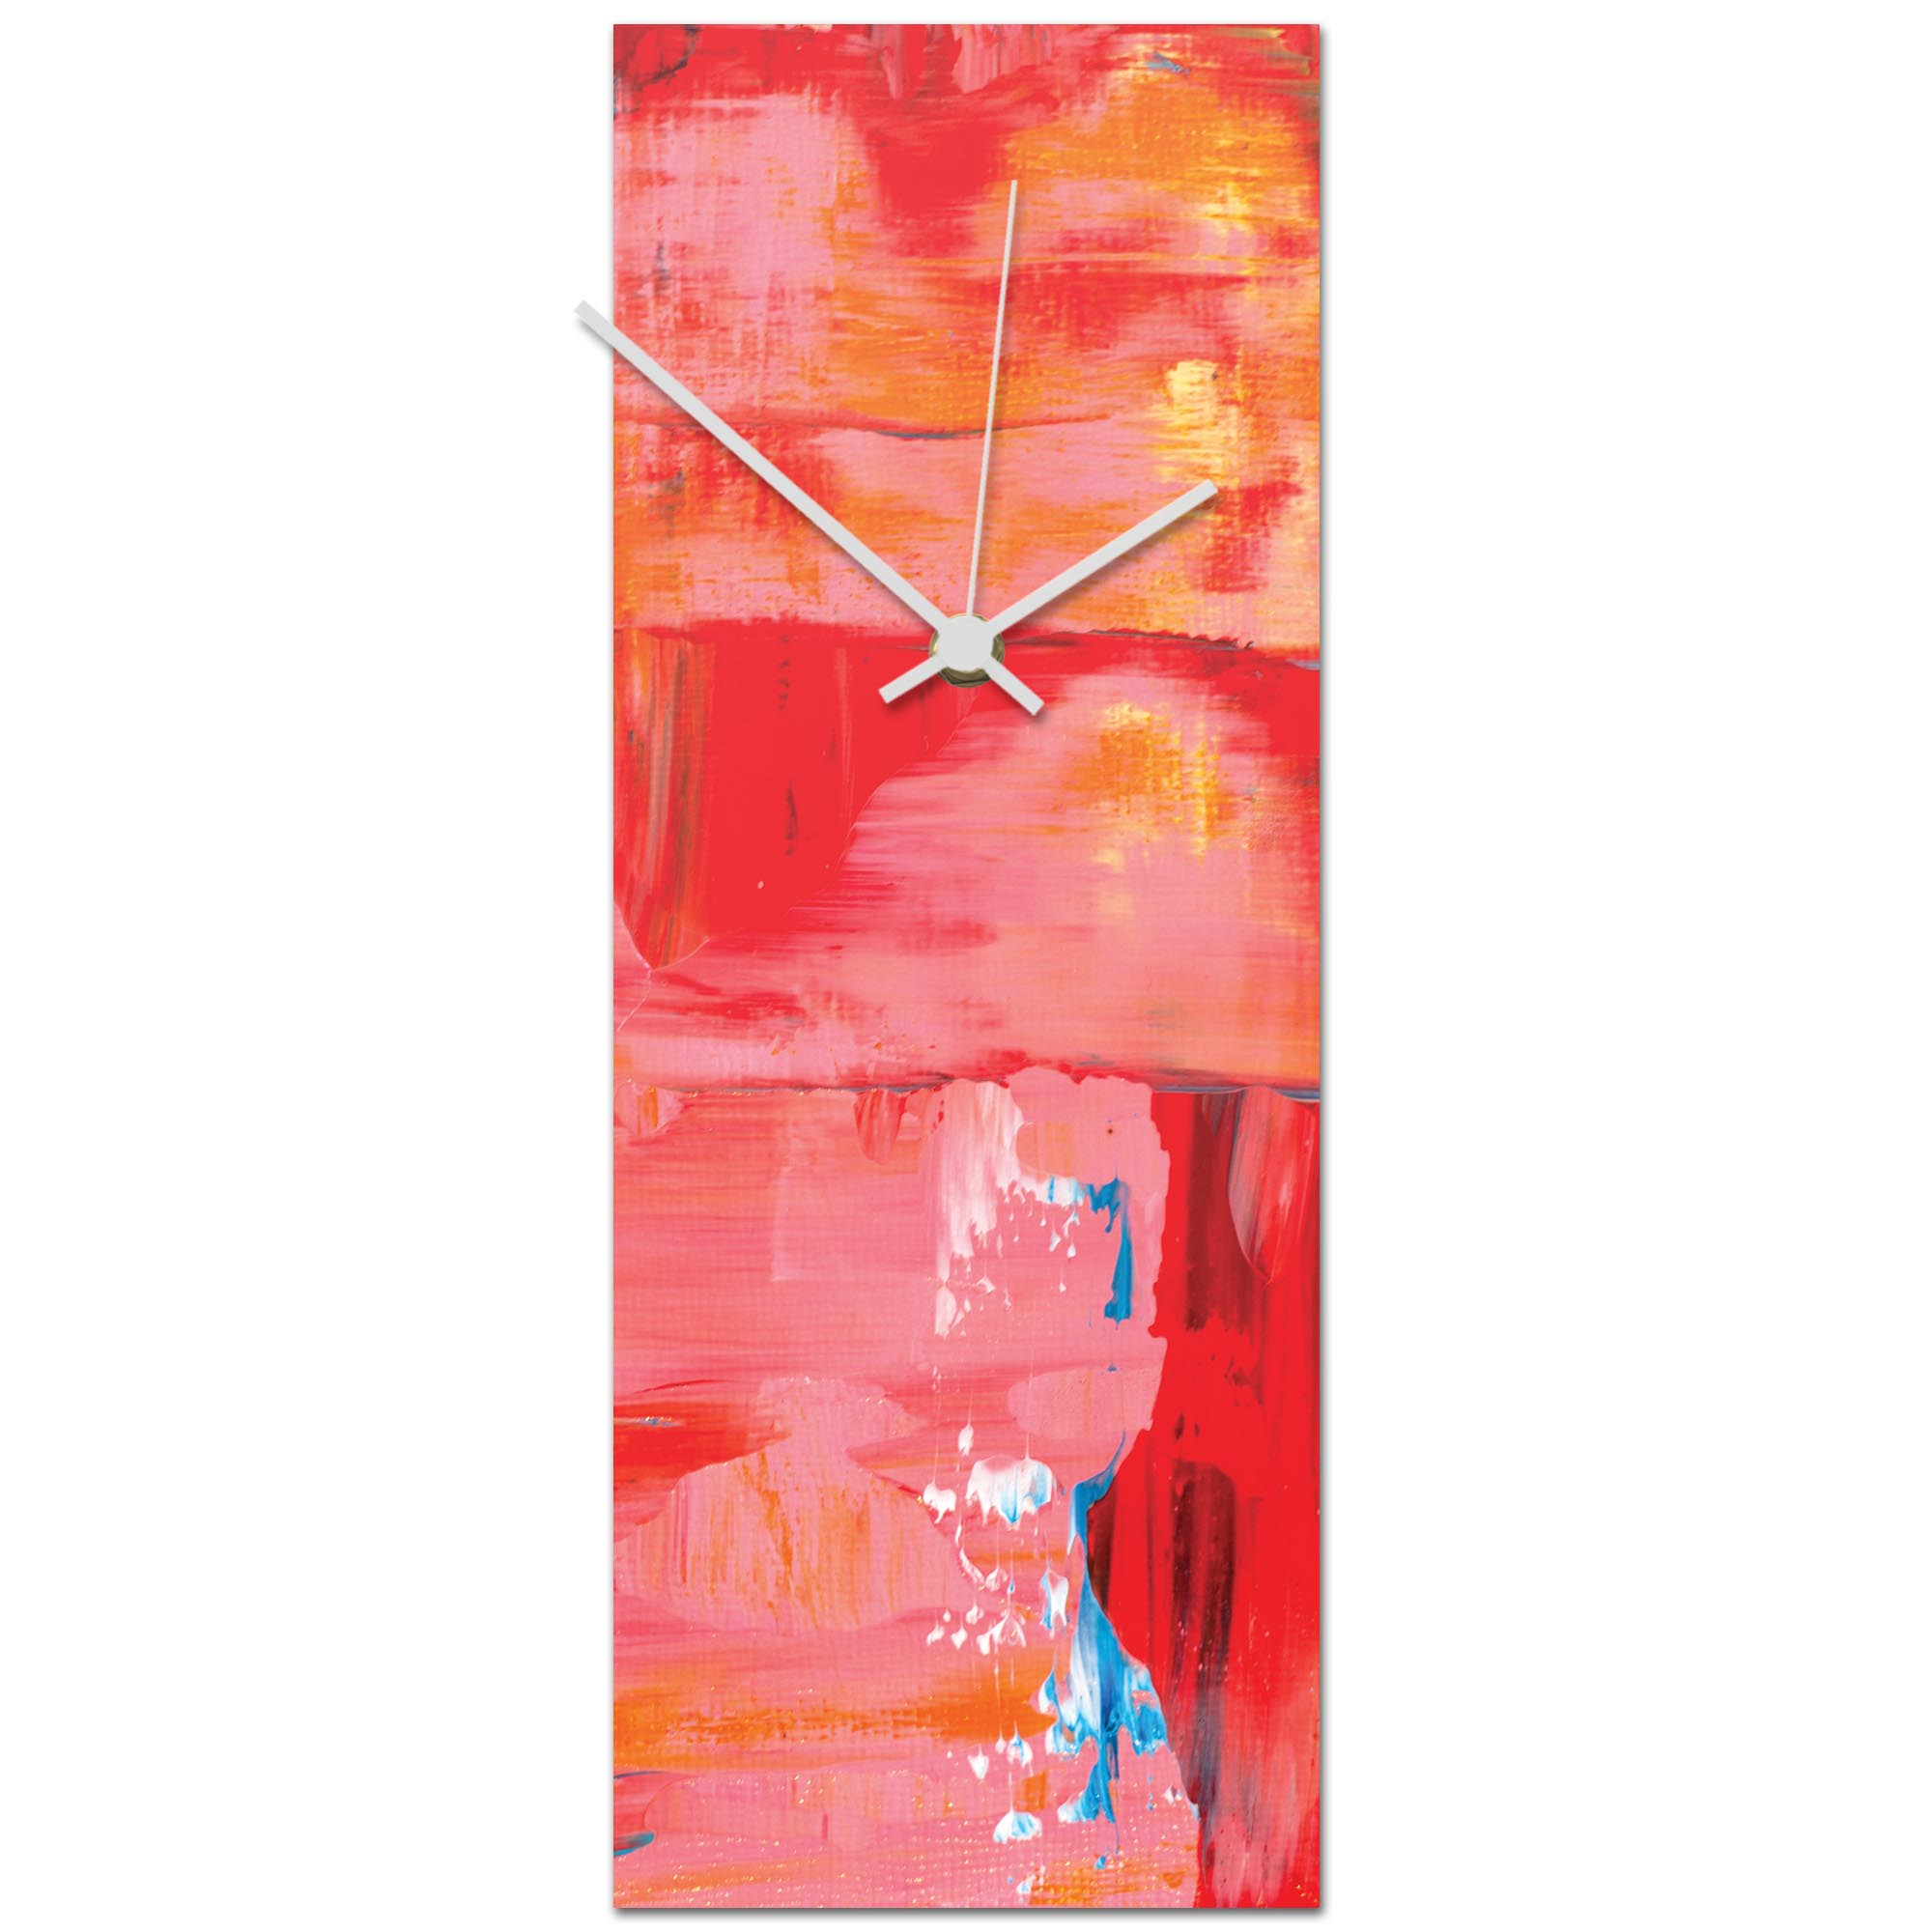 Urban Warmth v6 Clock 6x16in. Metal